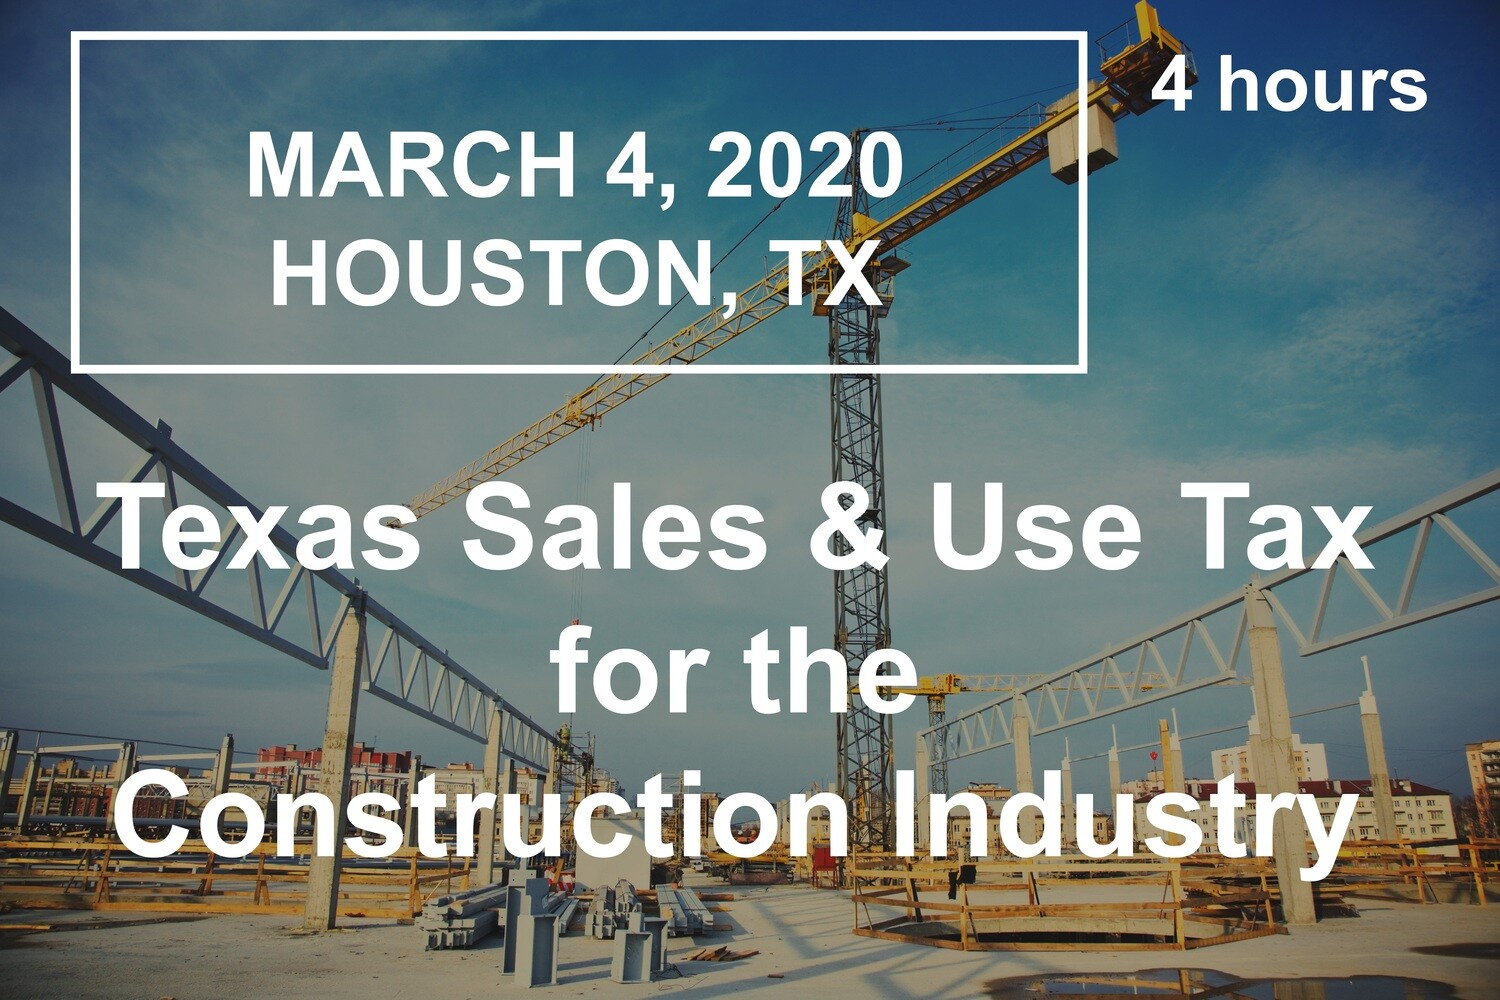 TX Sales & Use Tax for the Construction Industry: March 4, 2020